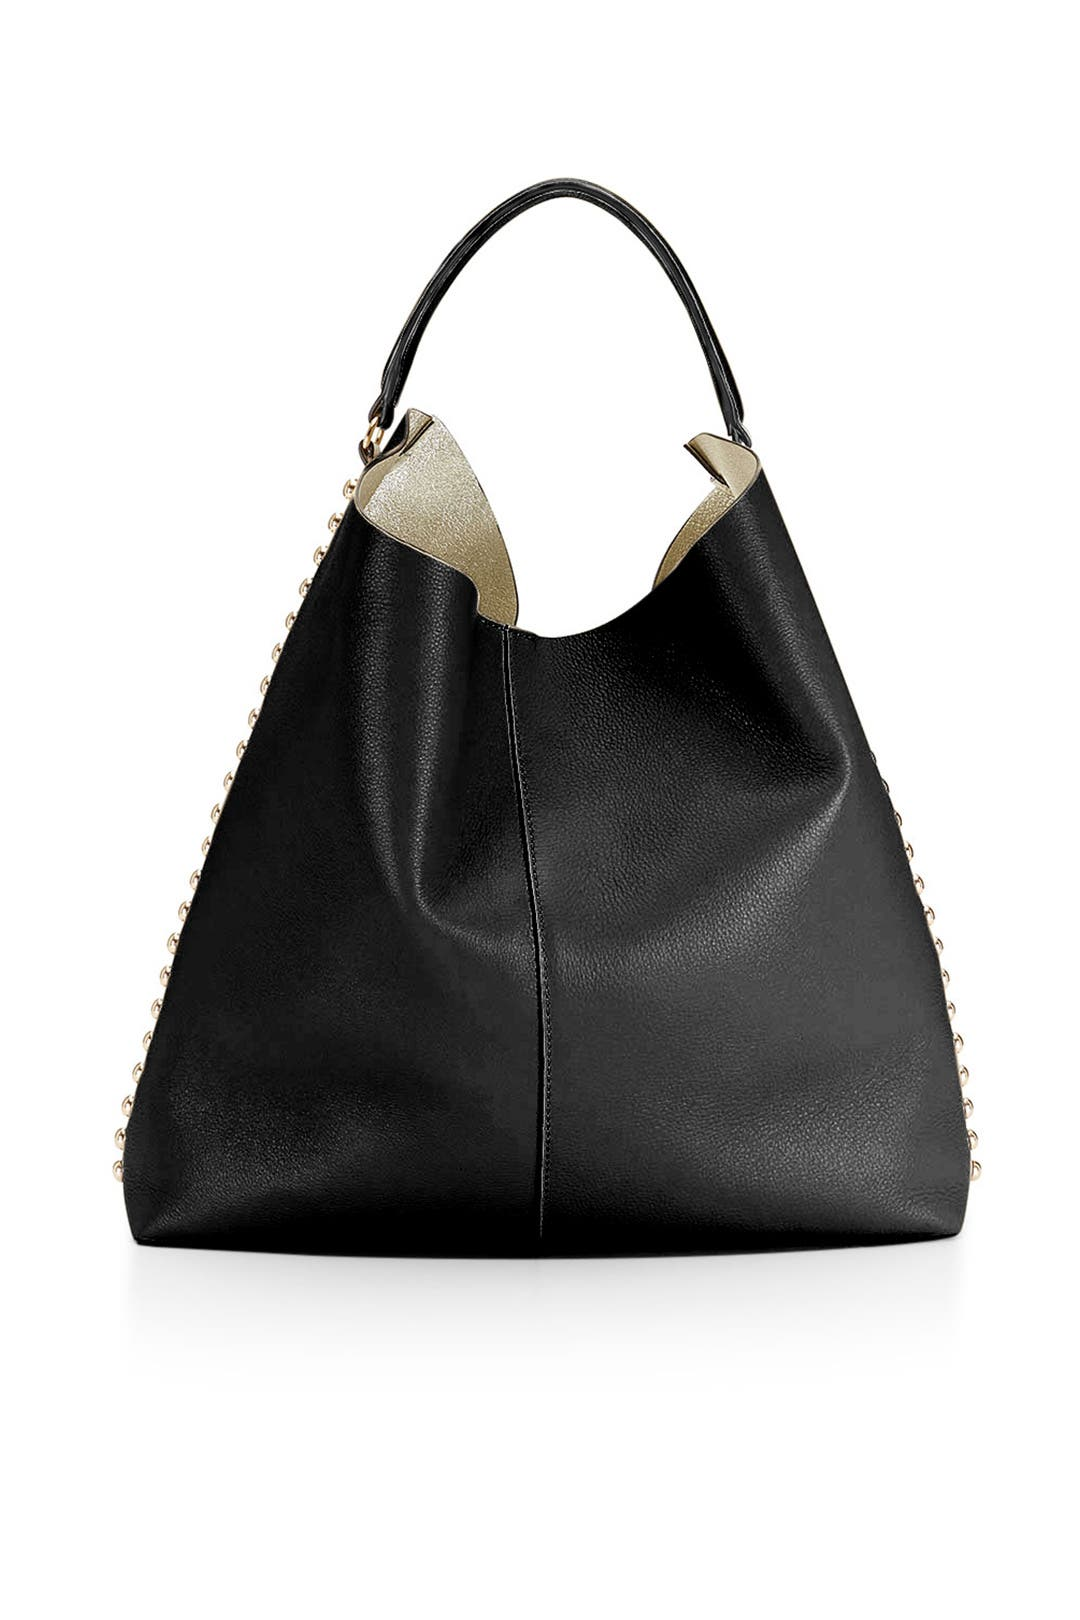 Black Unlined Hobo Bag By Rebecca Minkoff Accessories For 142 The Runway